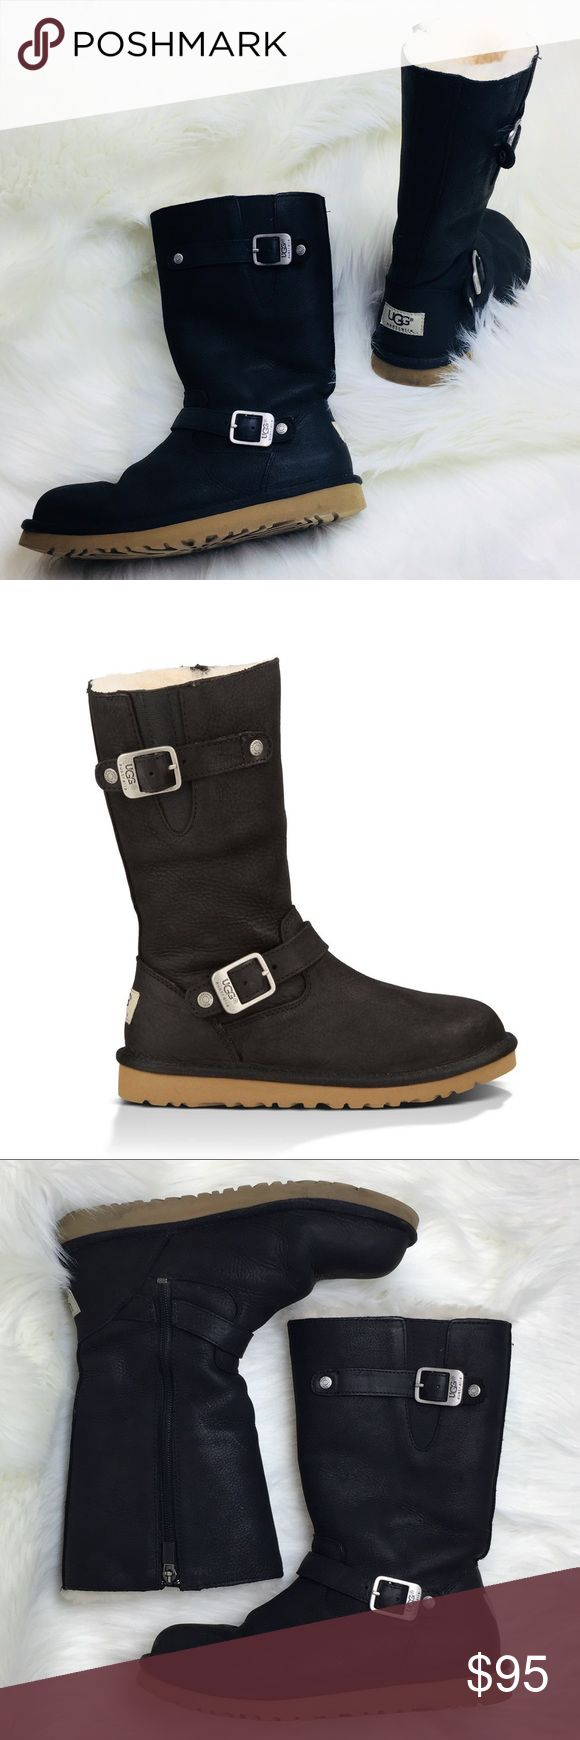 """Black UGG Kensington Winter Boots (Y5 / W7) Very good condition! Only slight signs of wear. Tag says US size youth 5, UK 4, EU 35. UGG's conversion to women's size is women's 7. They are 10.75"""" in sole length. Super soft genuine sheepskin lining with a leather upper. Eva outer sole.               #194-SW22 UGG Shoes Winter & Rain Boots"""